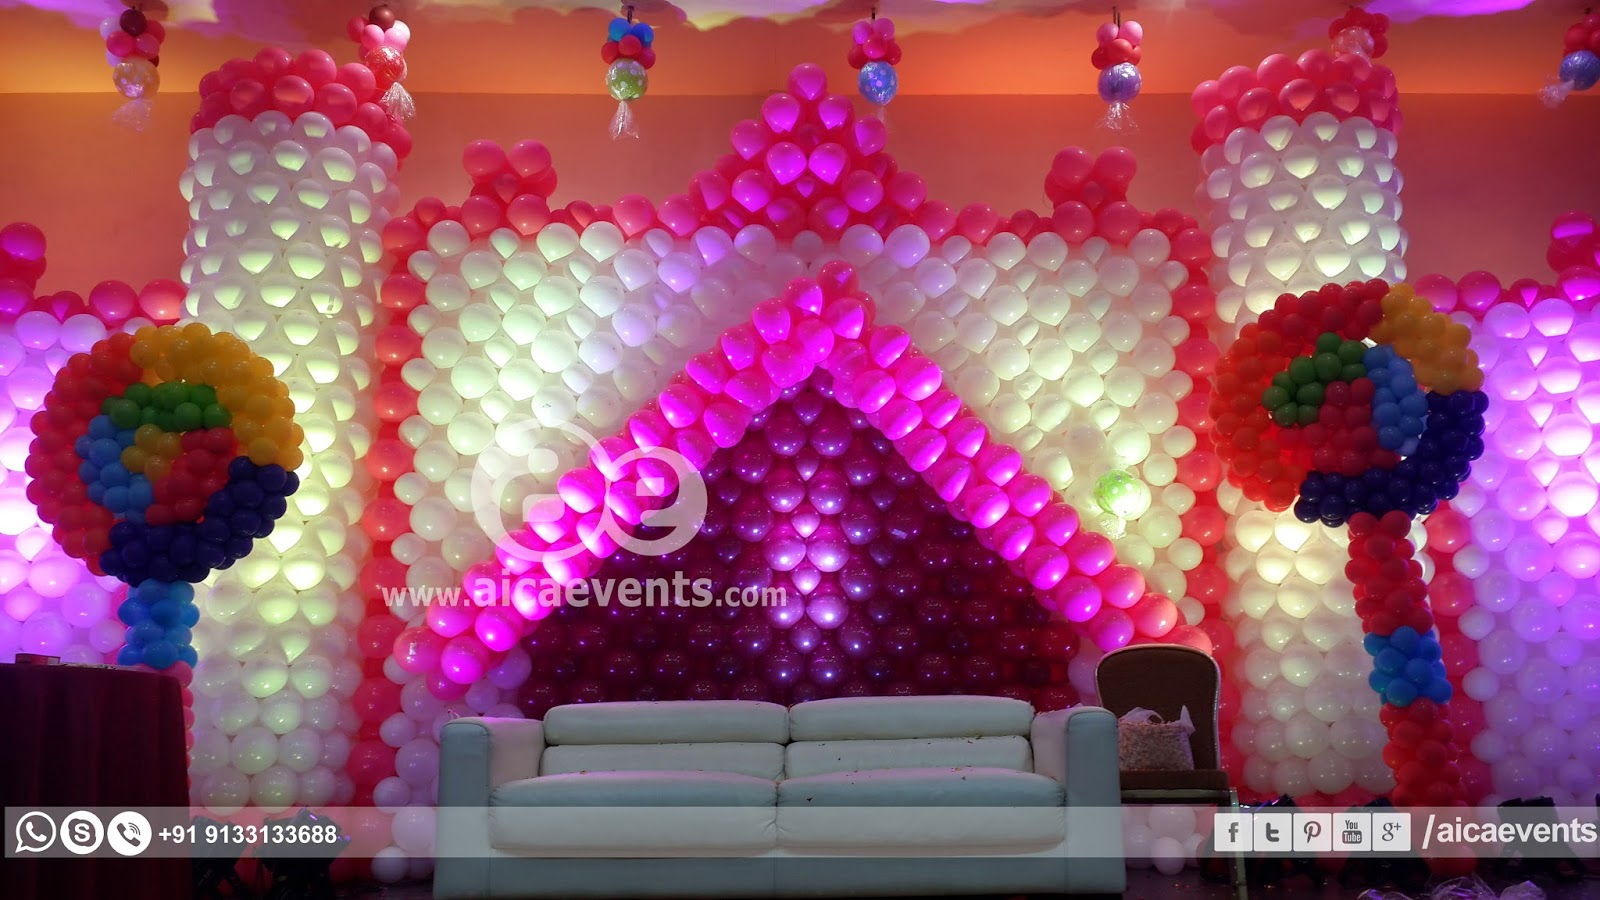 Aicaevents castle with balloon wall decoration for Balloon decoration on wall for birthday